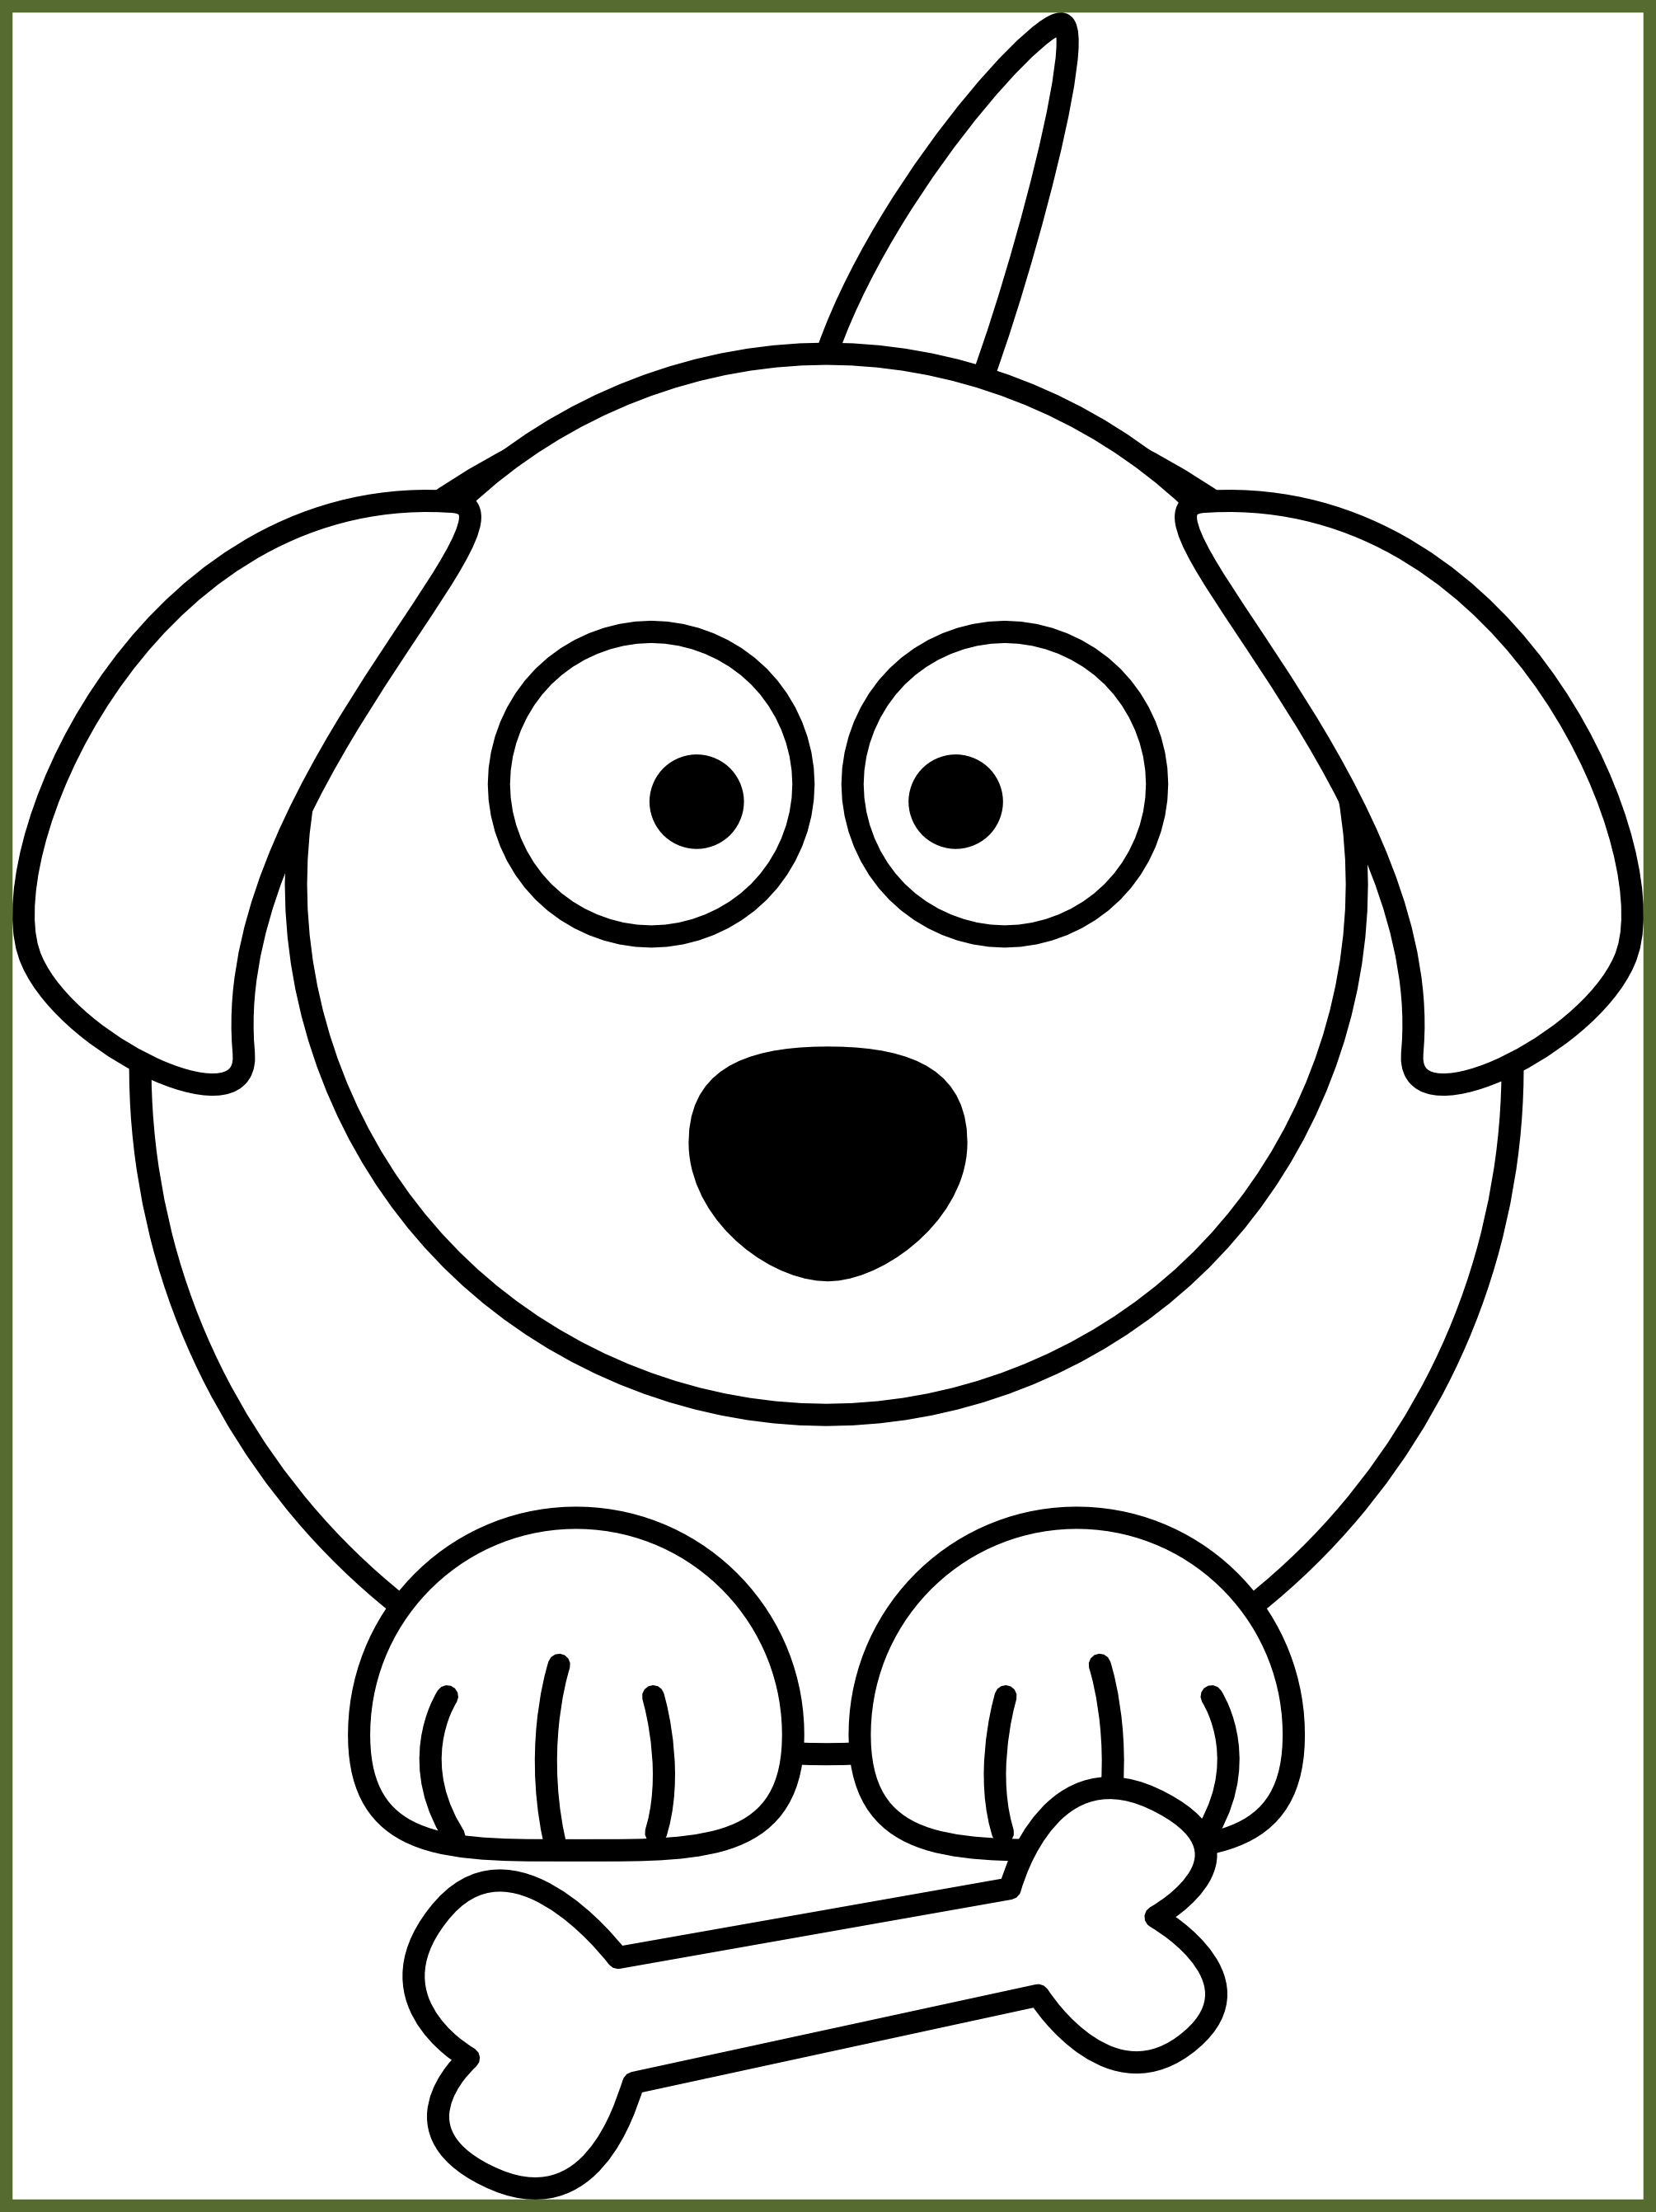 Best clip art for. Dog bowl clipart black and white